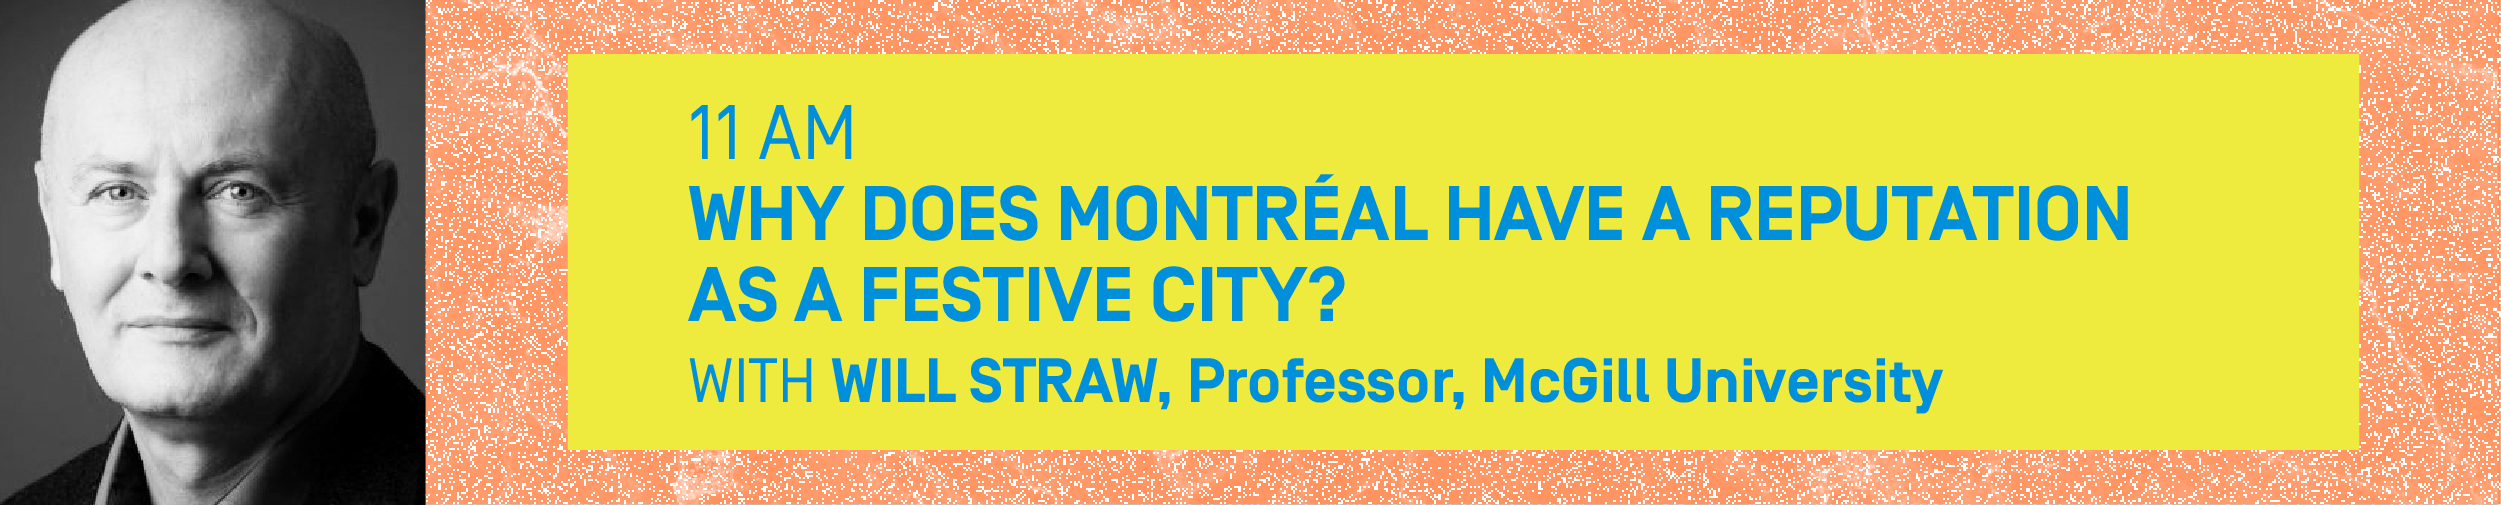 11AM – WHY DOES MONTRÉAL HAVE A REPUTATION AS A FESTIVE CITY? With WILL STRAW, Professor, McGill University